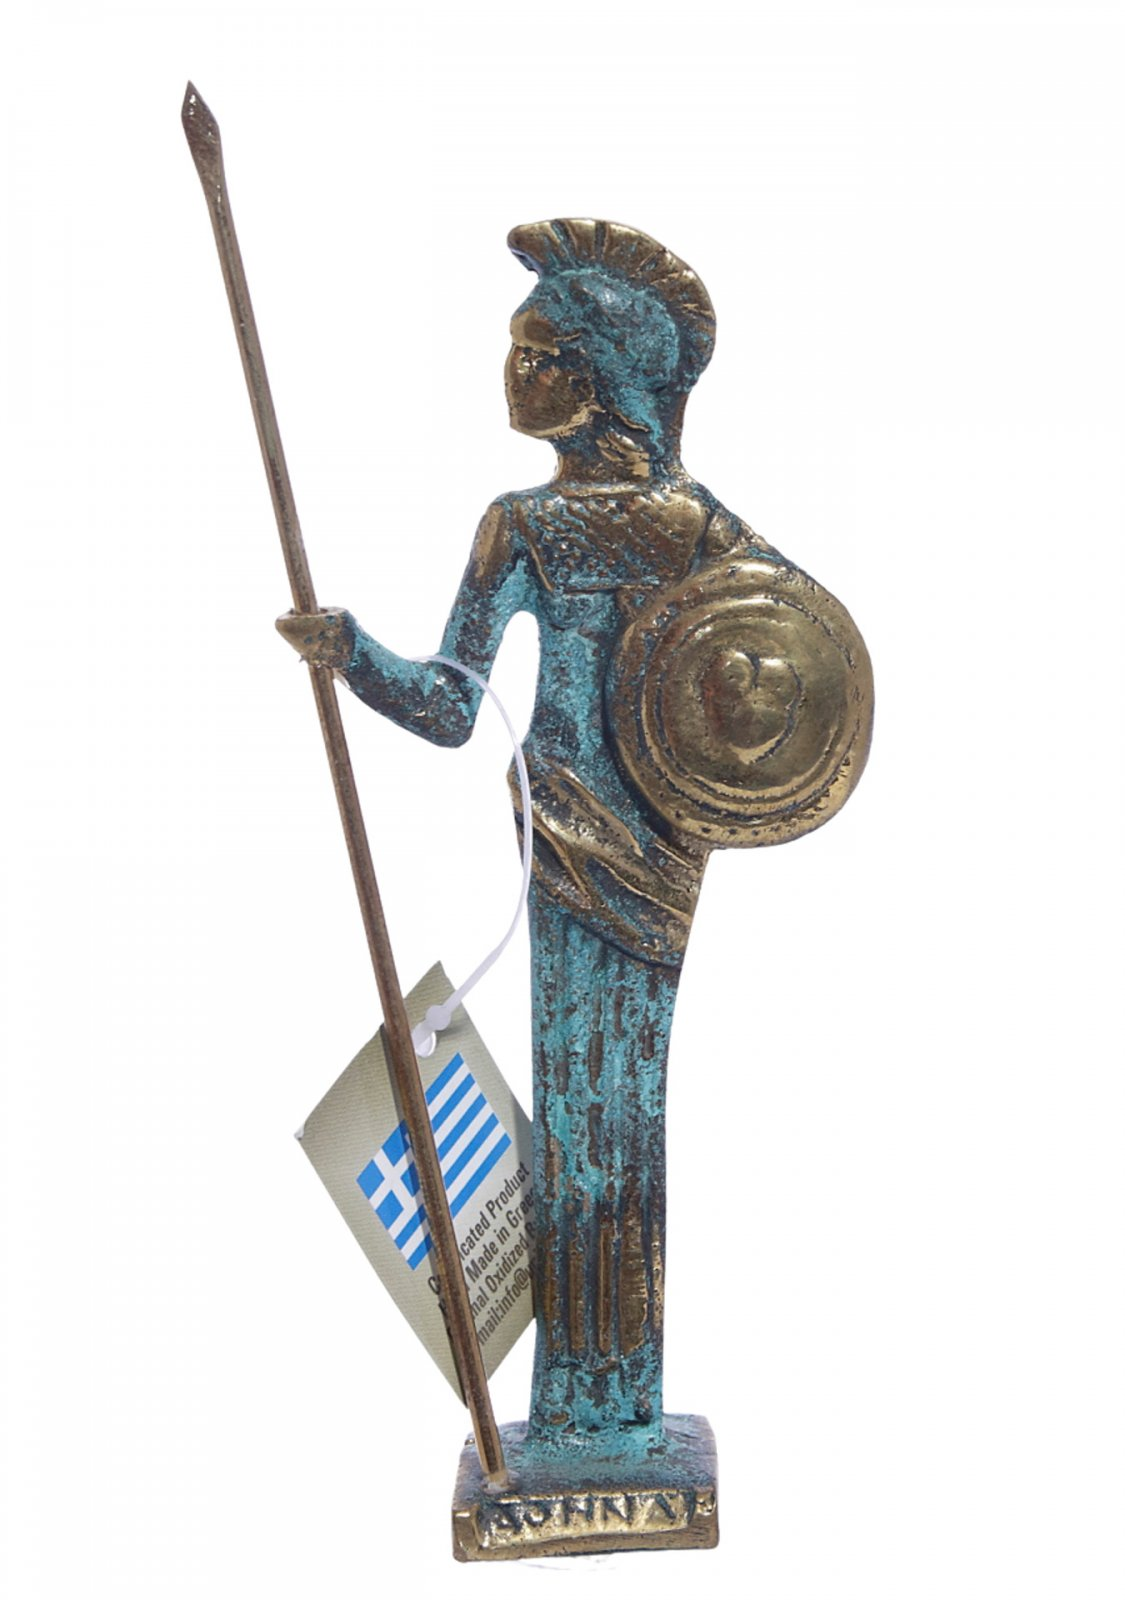 Small bronze statue of Goddess Athena holding her shield and spear